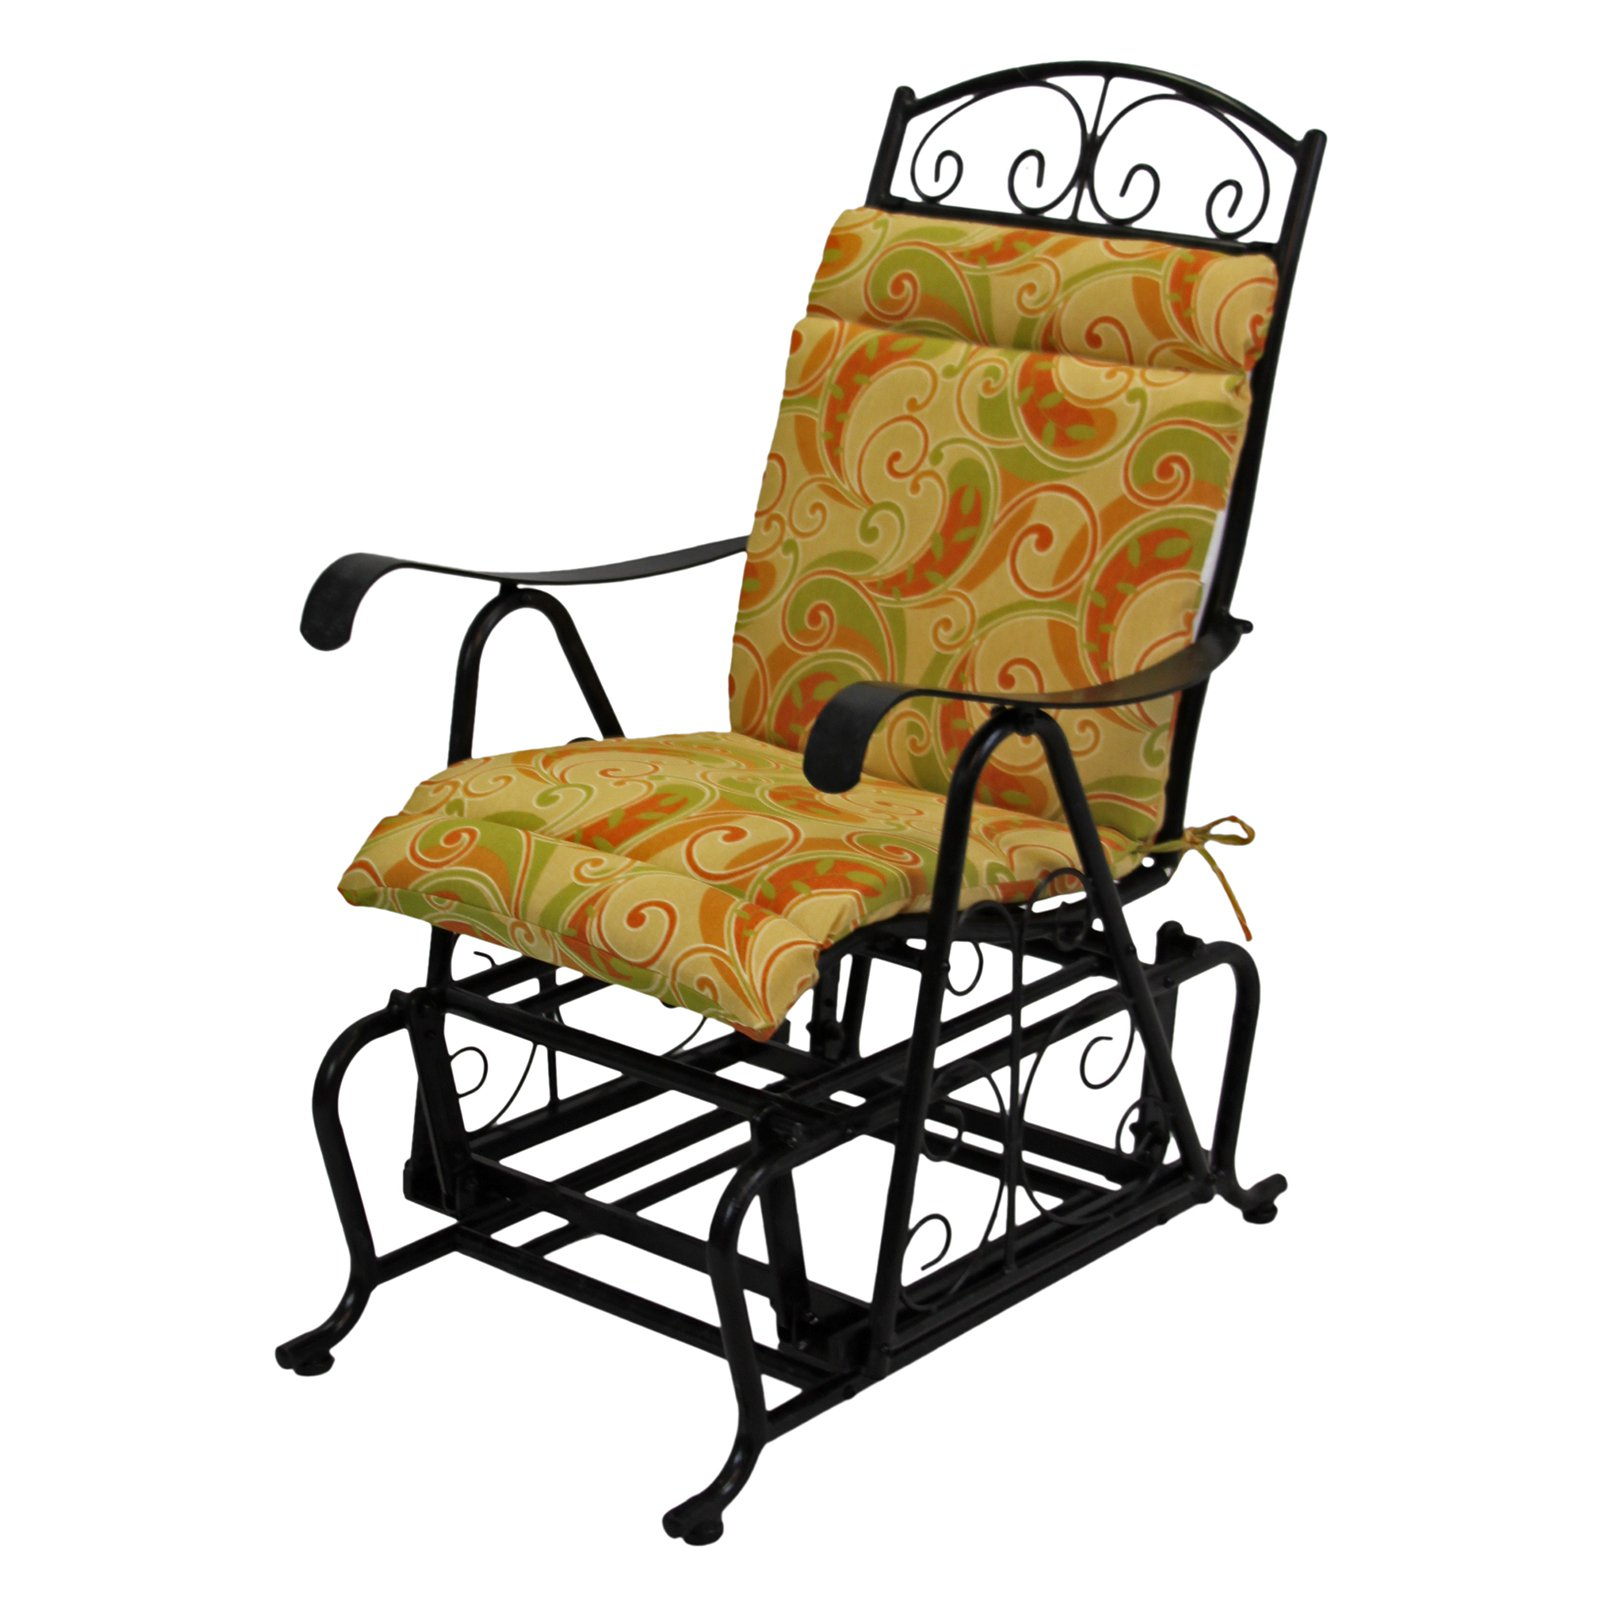 Glider Benches With Cushion In Well Known Blazing Needles Outdoor Glider Chair Hinged Seat & Back (View 14 of 30)